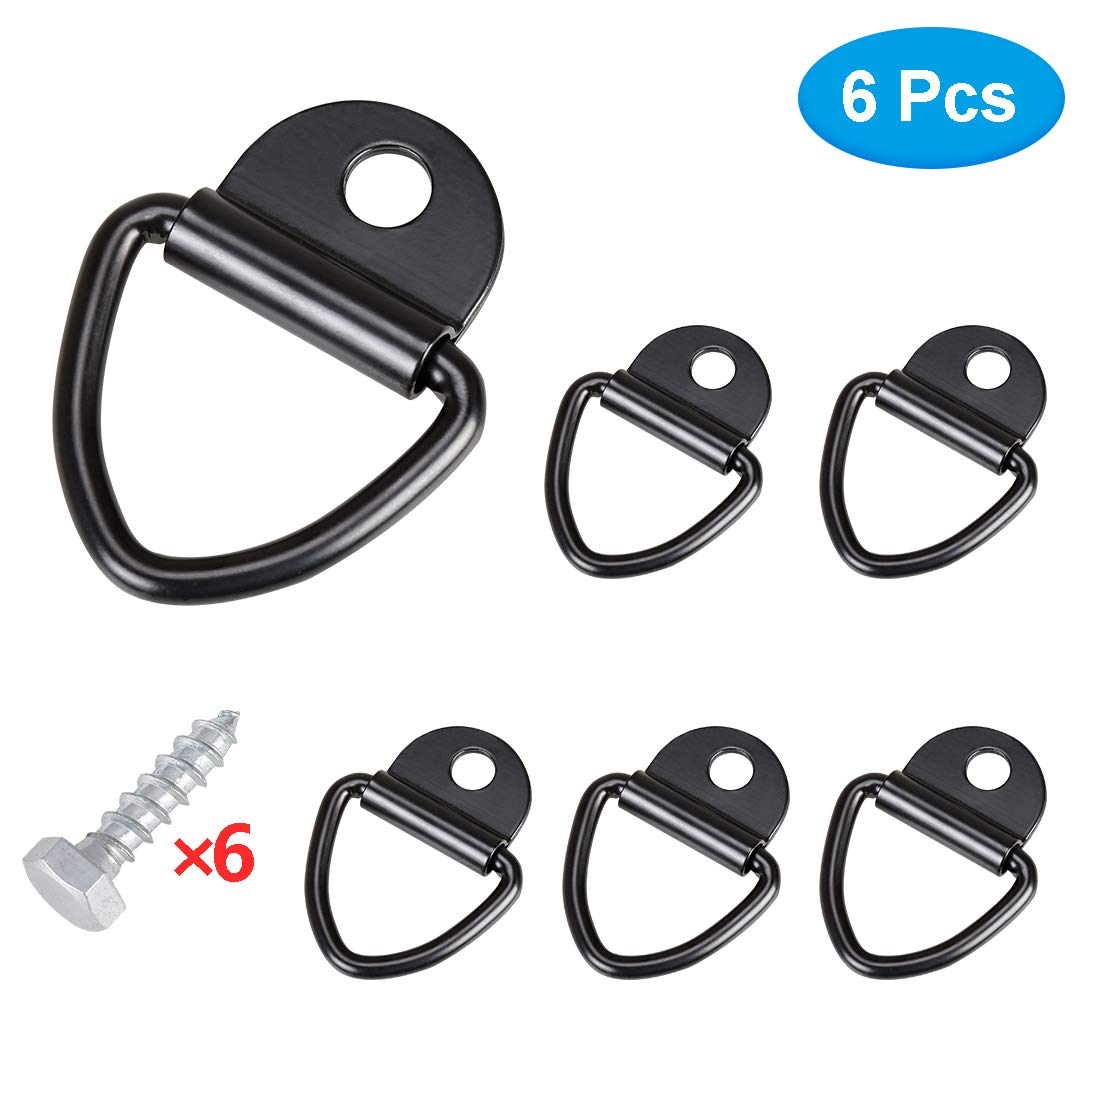 SUPAREE 4 Pcs Truck Bed Side Wall Tie Down Anchors for 2007-2018 Chevy Silverado/GMC Sierra, 2015-2018 Colorado & Canyon